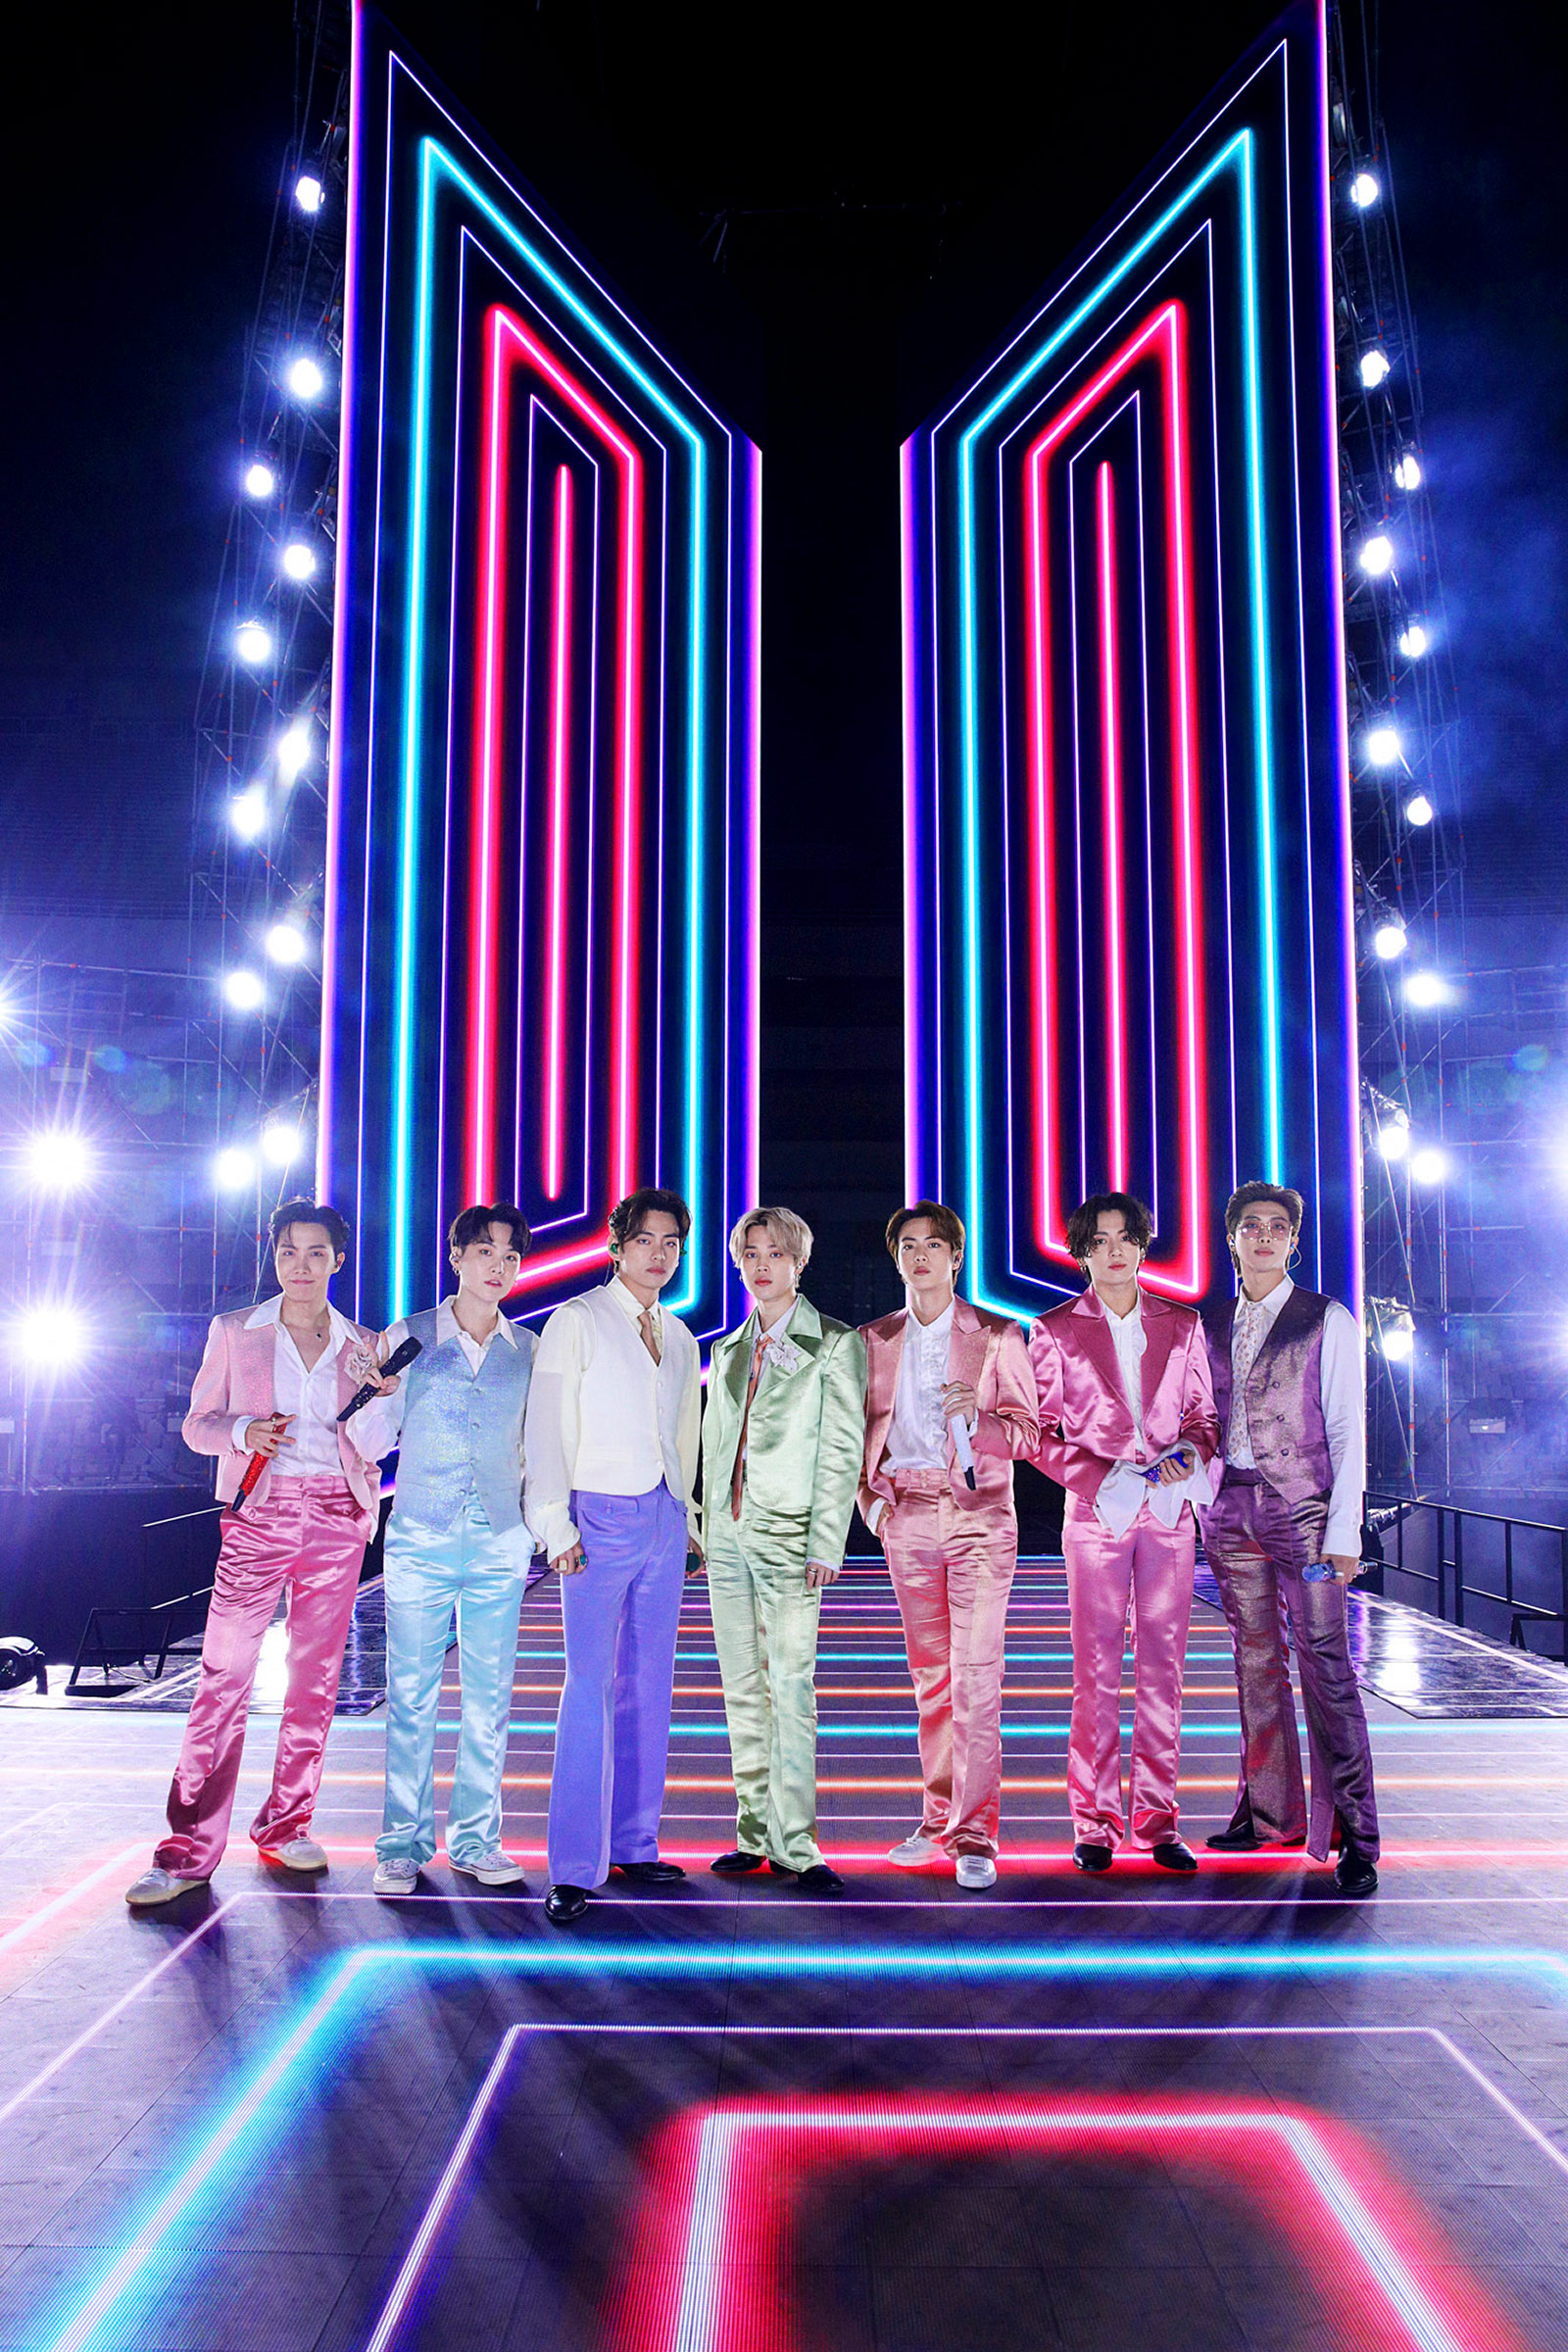 BTS perform onstage for the 2020 American Music Awards in South Korea on Nov. 22, 2020.